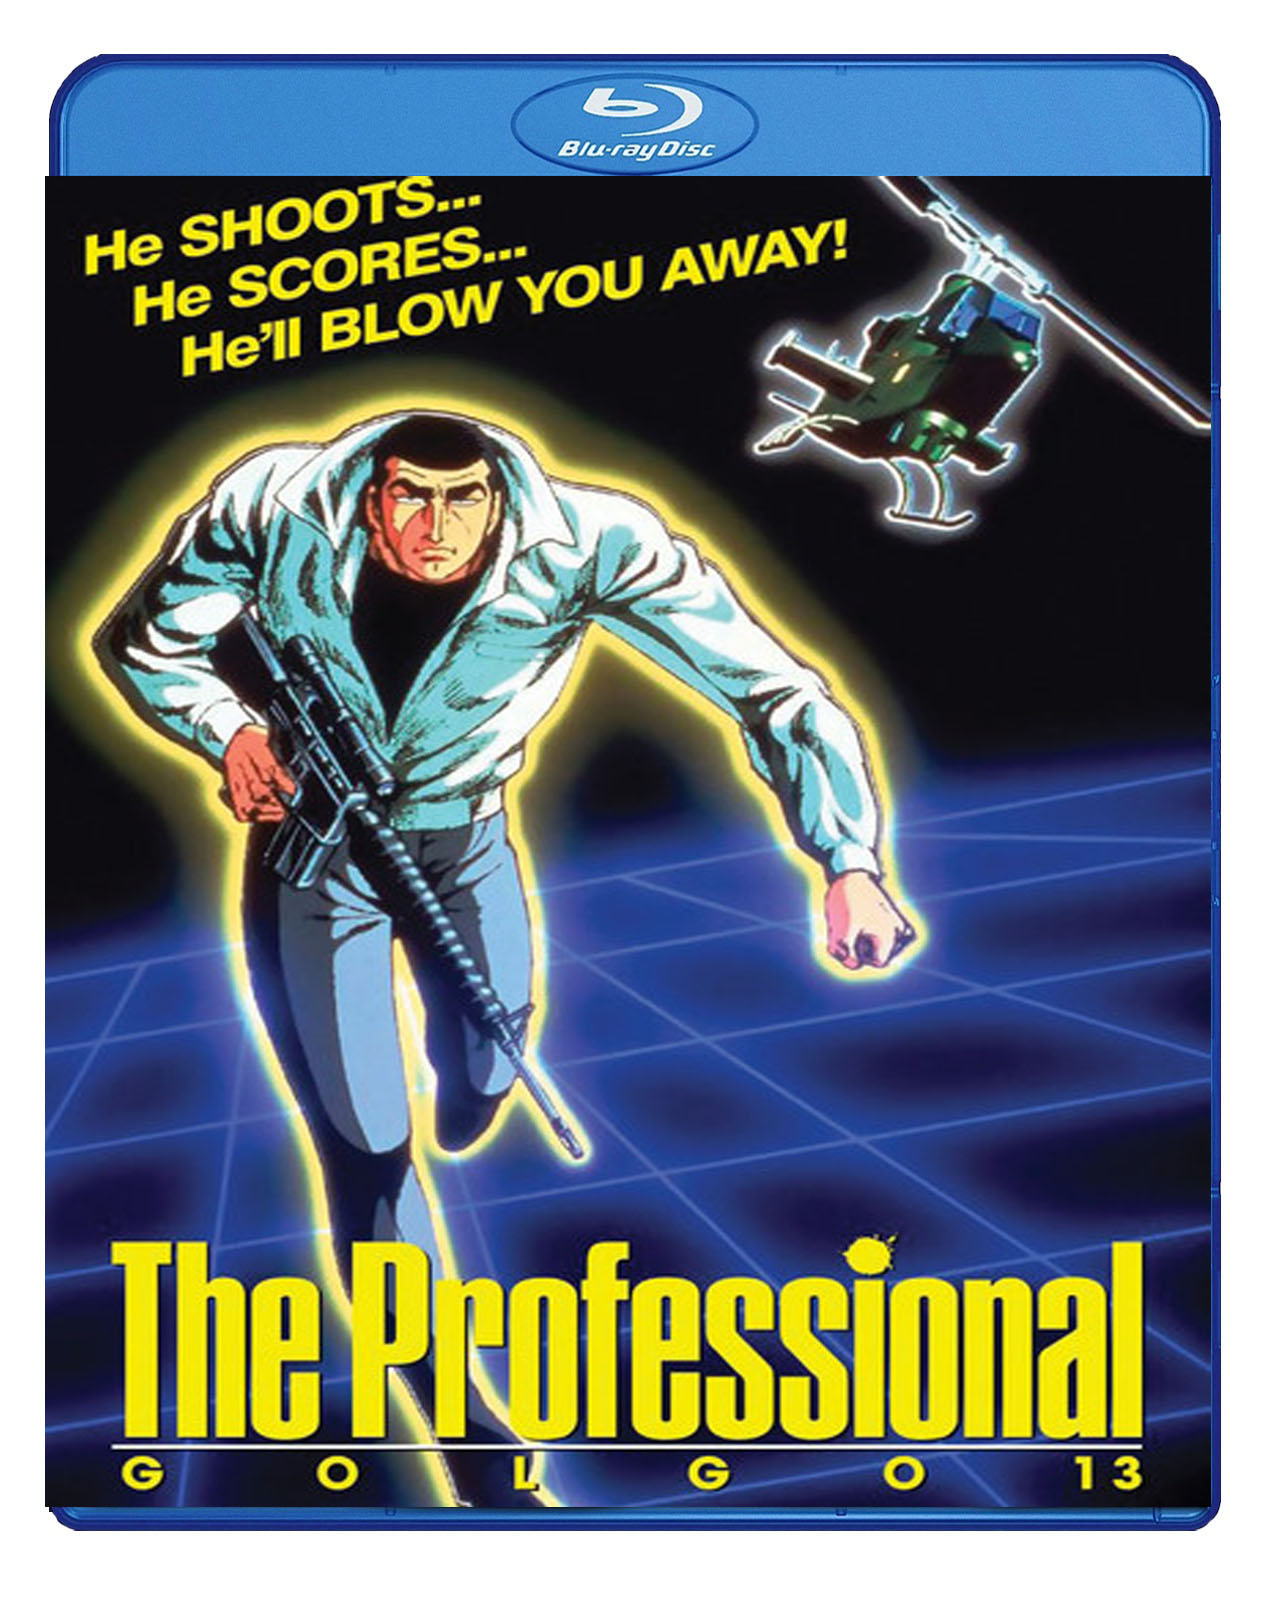 Golgo 13 The Professional Blu-ray 875707133098